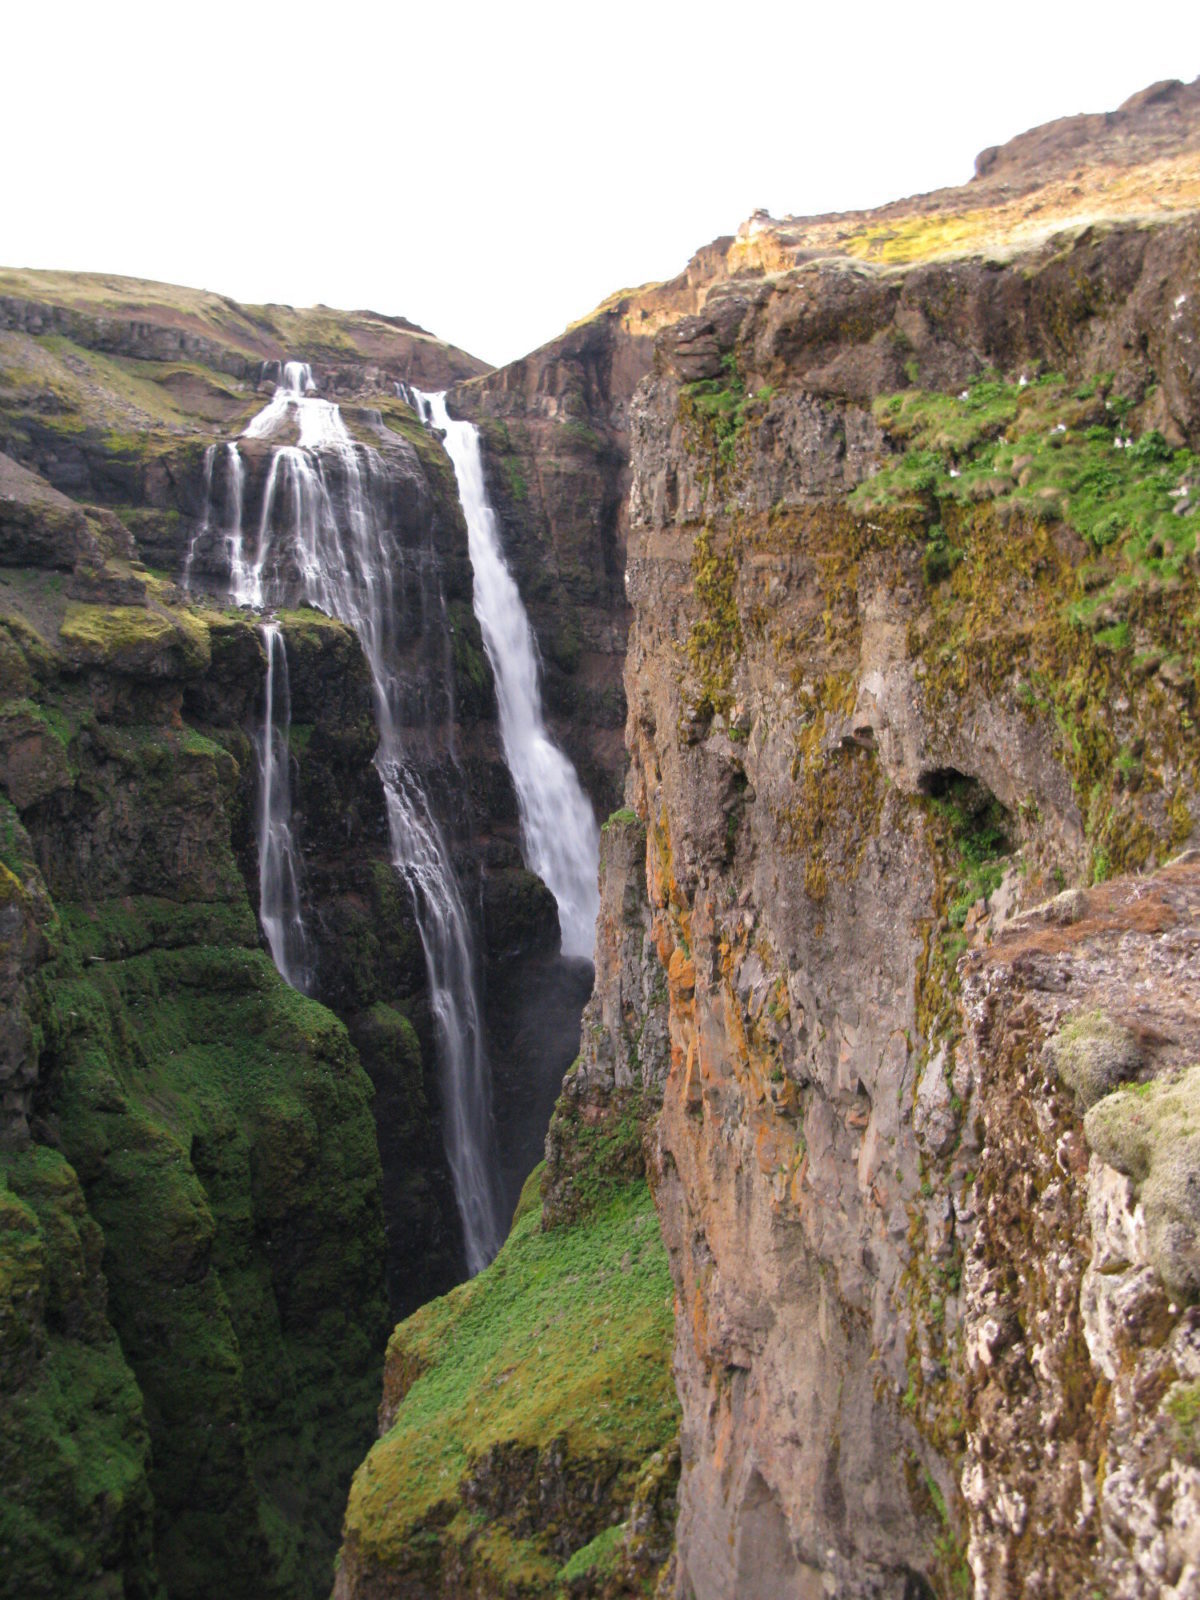 Glymur waterfall is pretty impressive